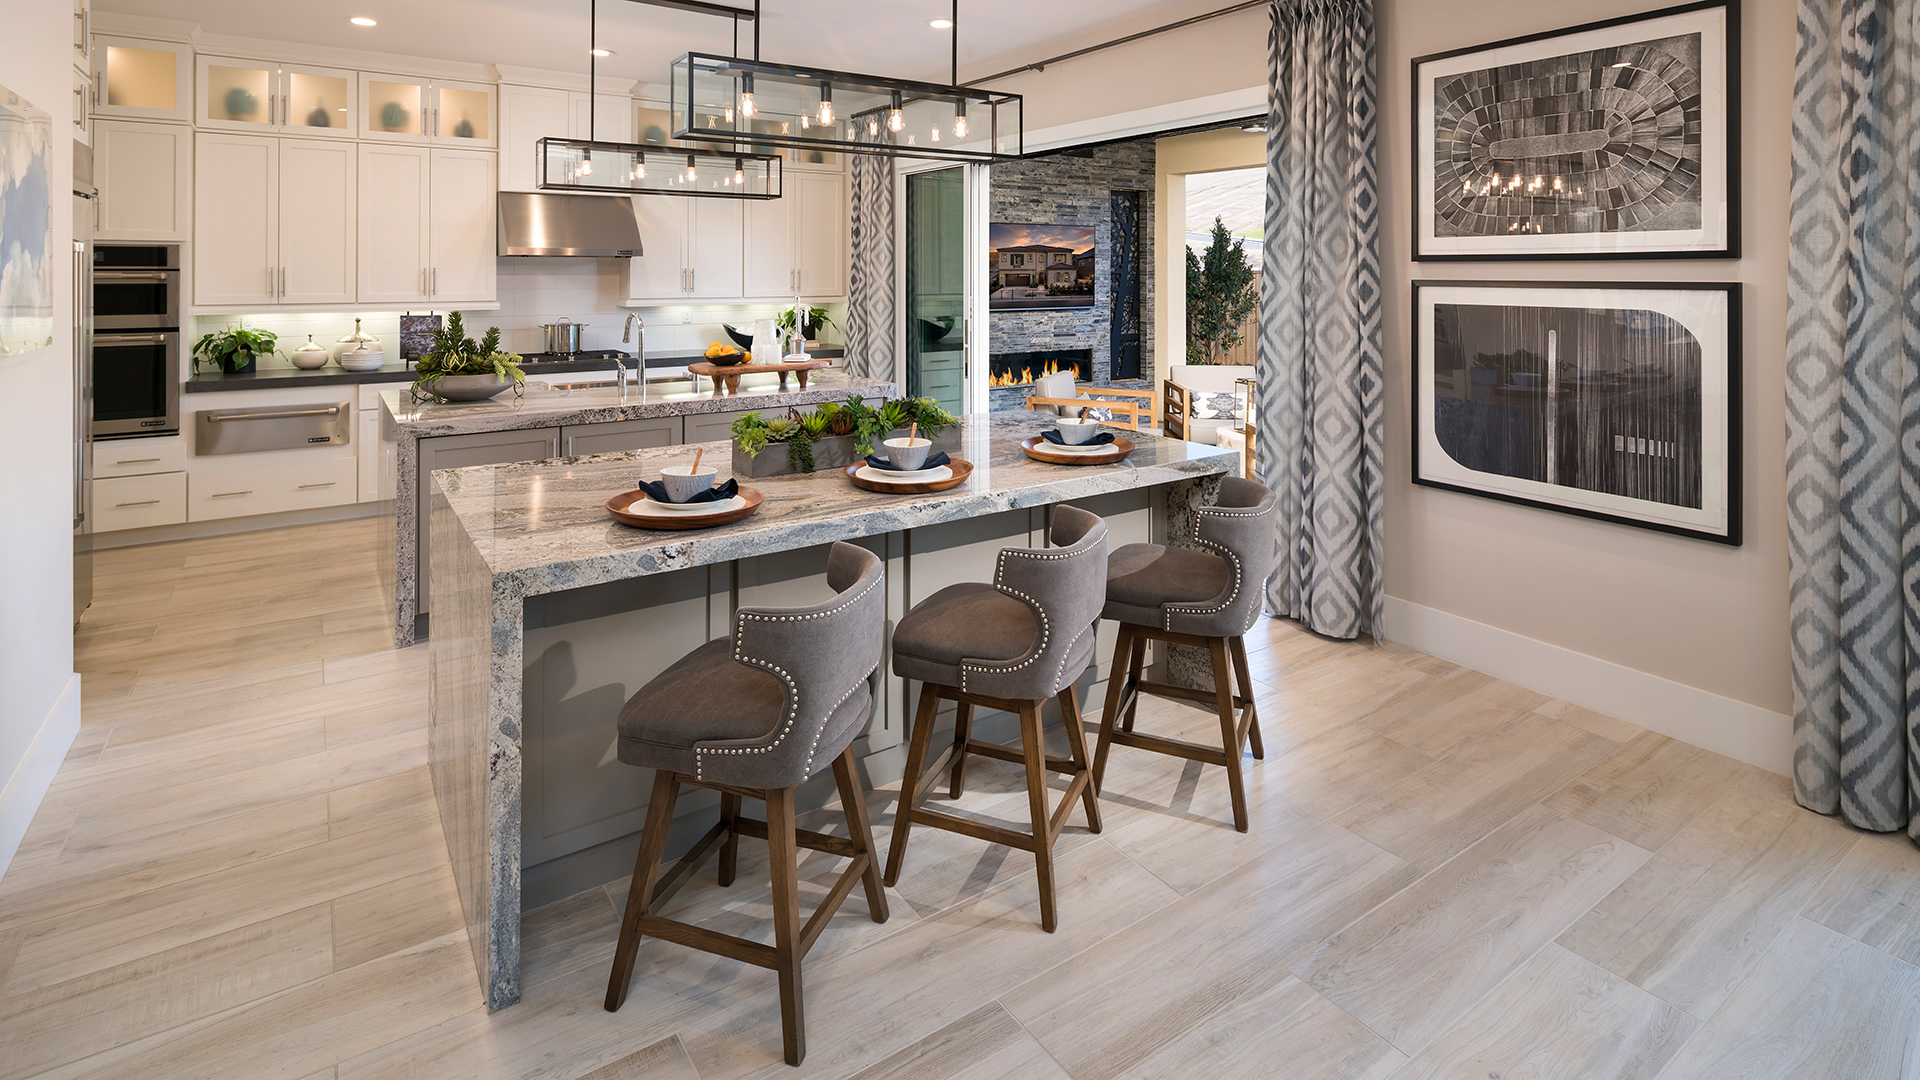 The Bluffs at Tassajara Hills offers the largest home designs within the master plan community and feature expansive home sites, stunning views.